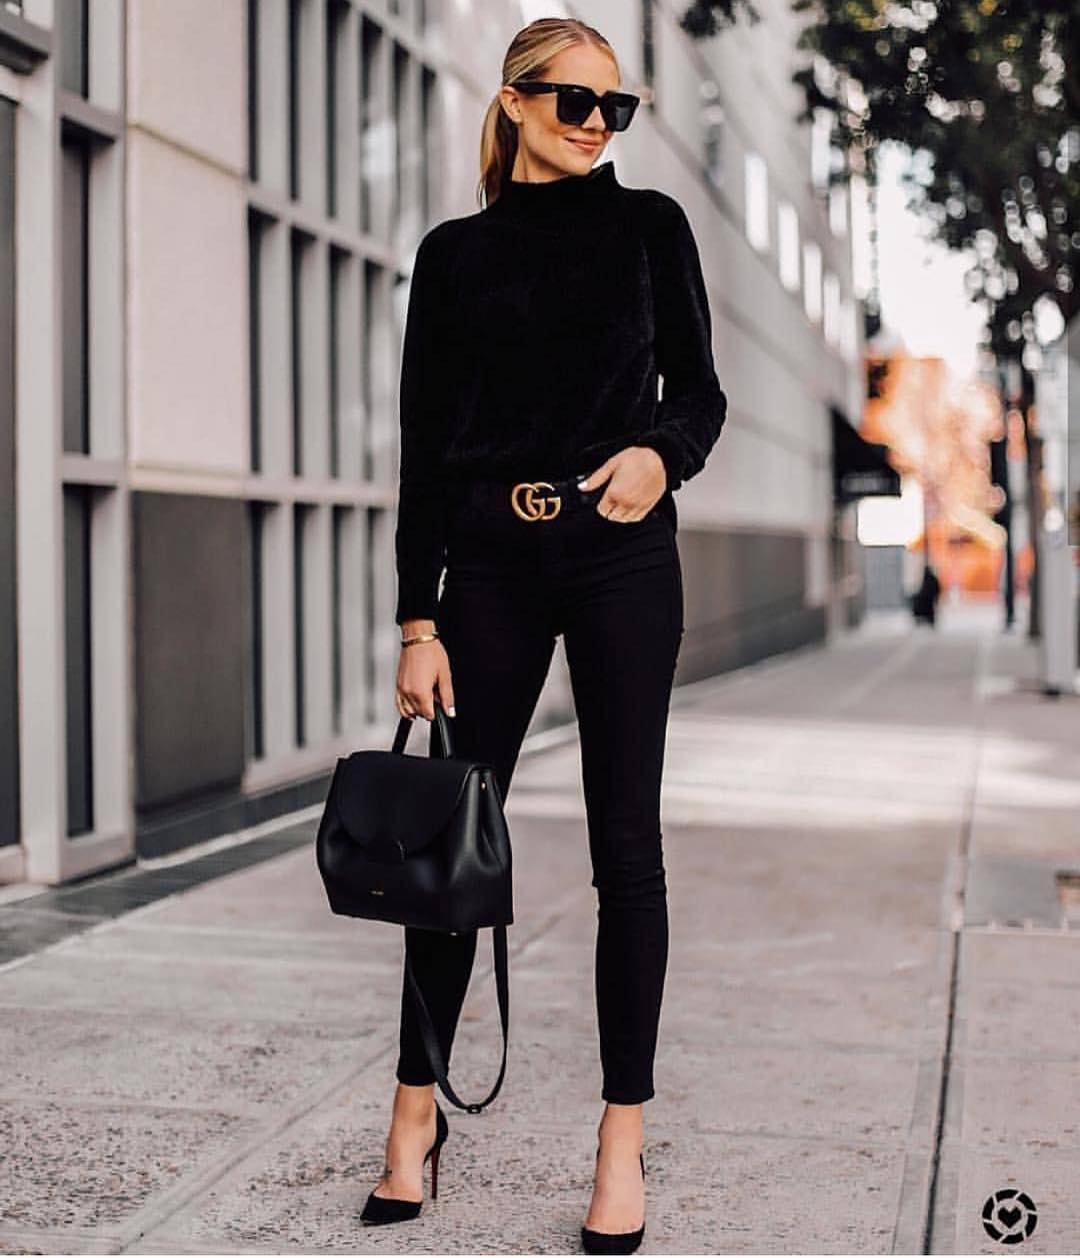 All Black Outfit For Fall: Velour Sweater, Skinny Jeans And Black Heels 2019